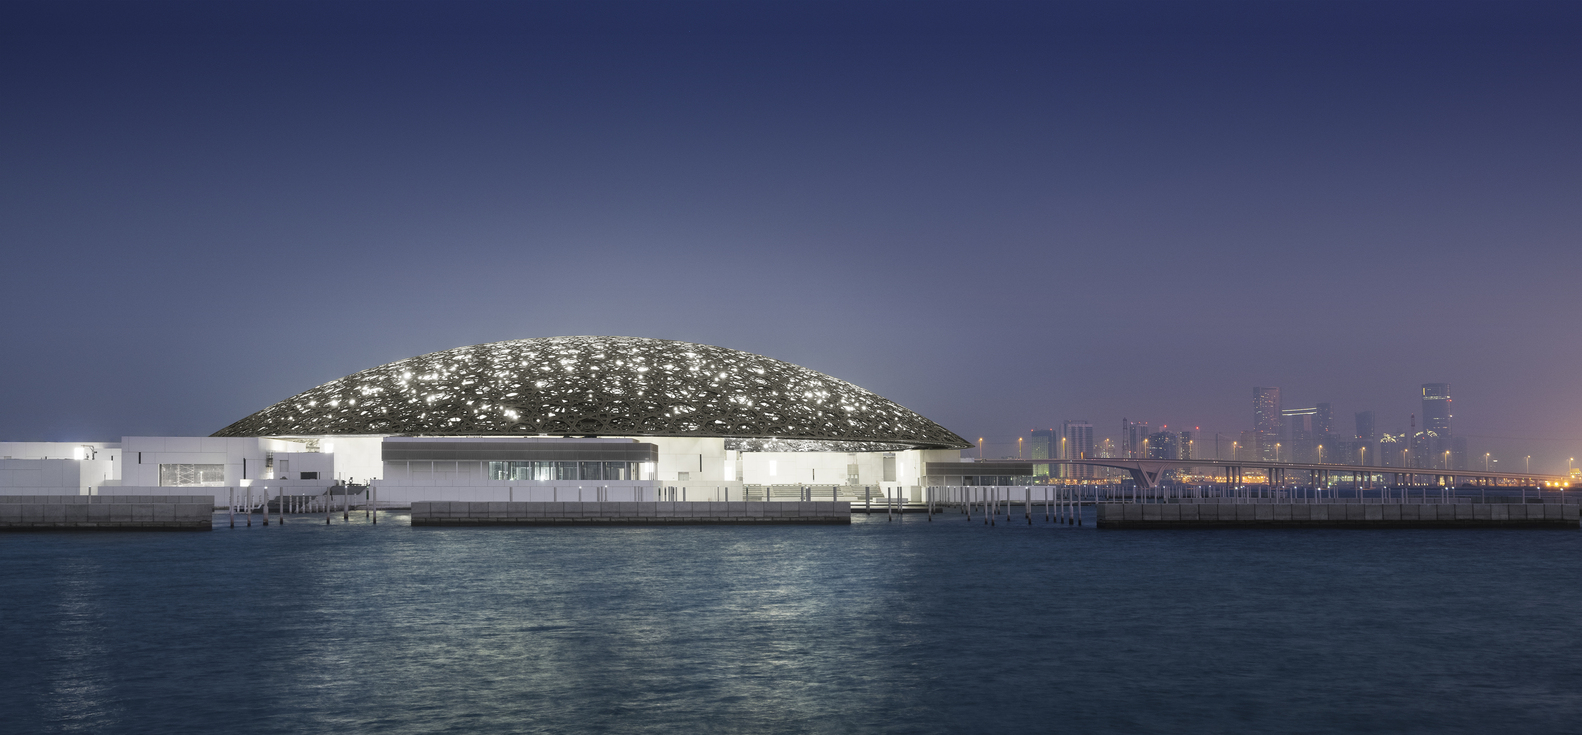 Exterior night view of the Louvre Abu Dhabi